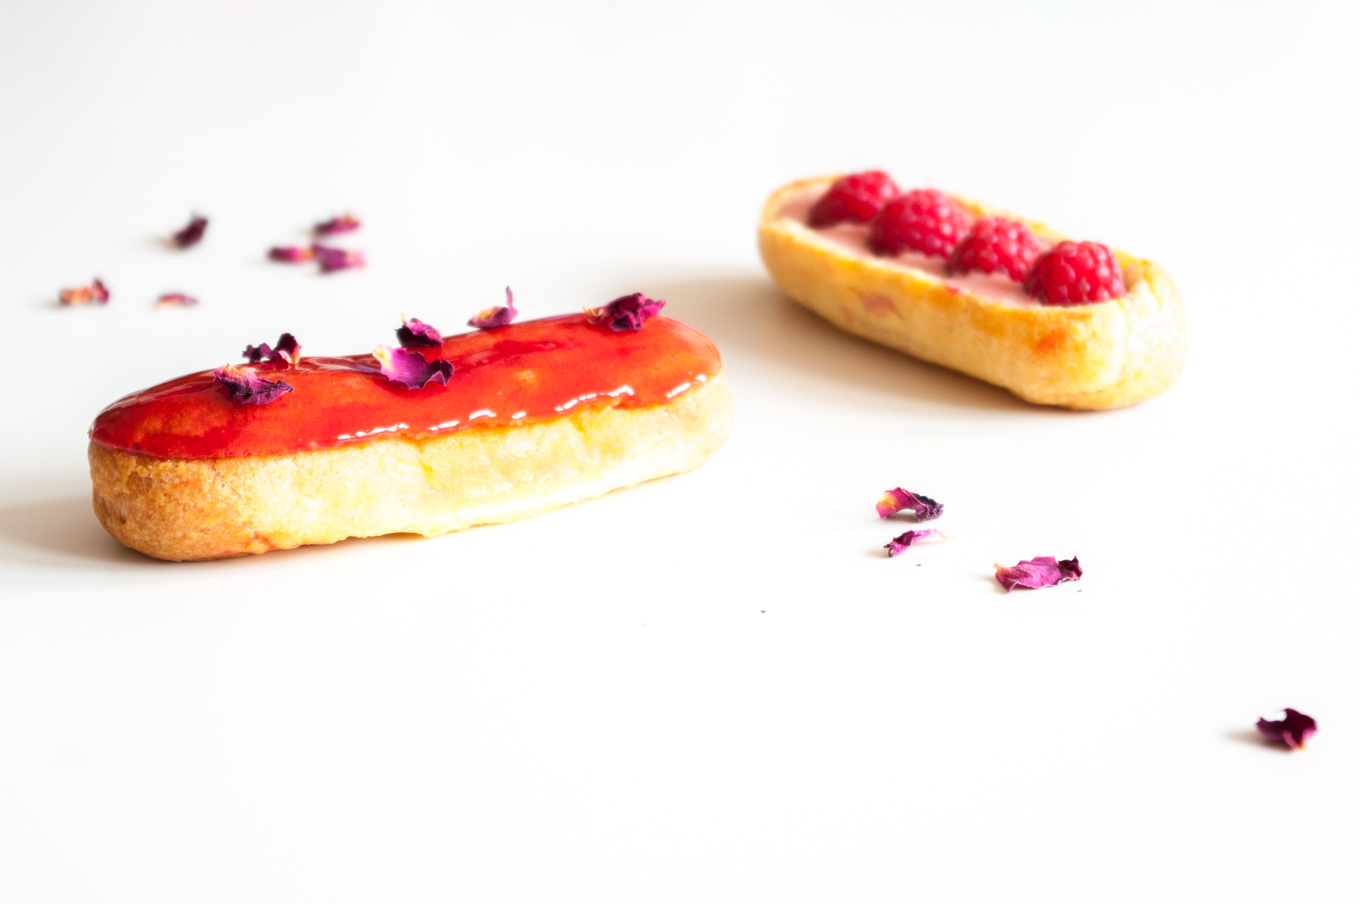 Raspberry Éclairs with Rose Recipe – These raspberry éclairs are filled with fresh raspberry and rose pastry cream and topped with a raspberry glaze and dried rose petals. By @deliciouscratch | deliciousfromscratch.com